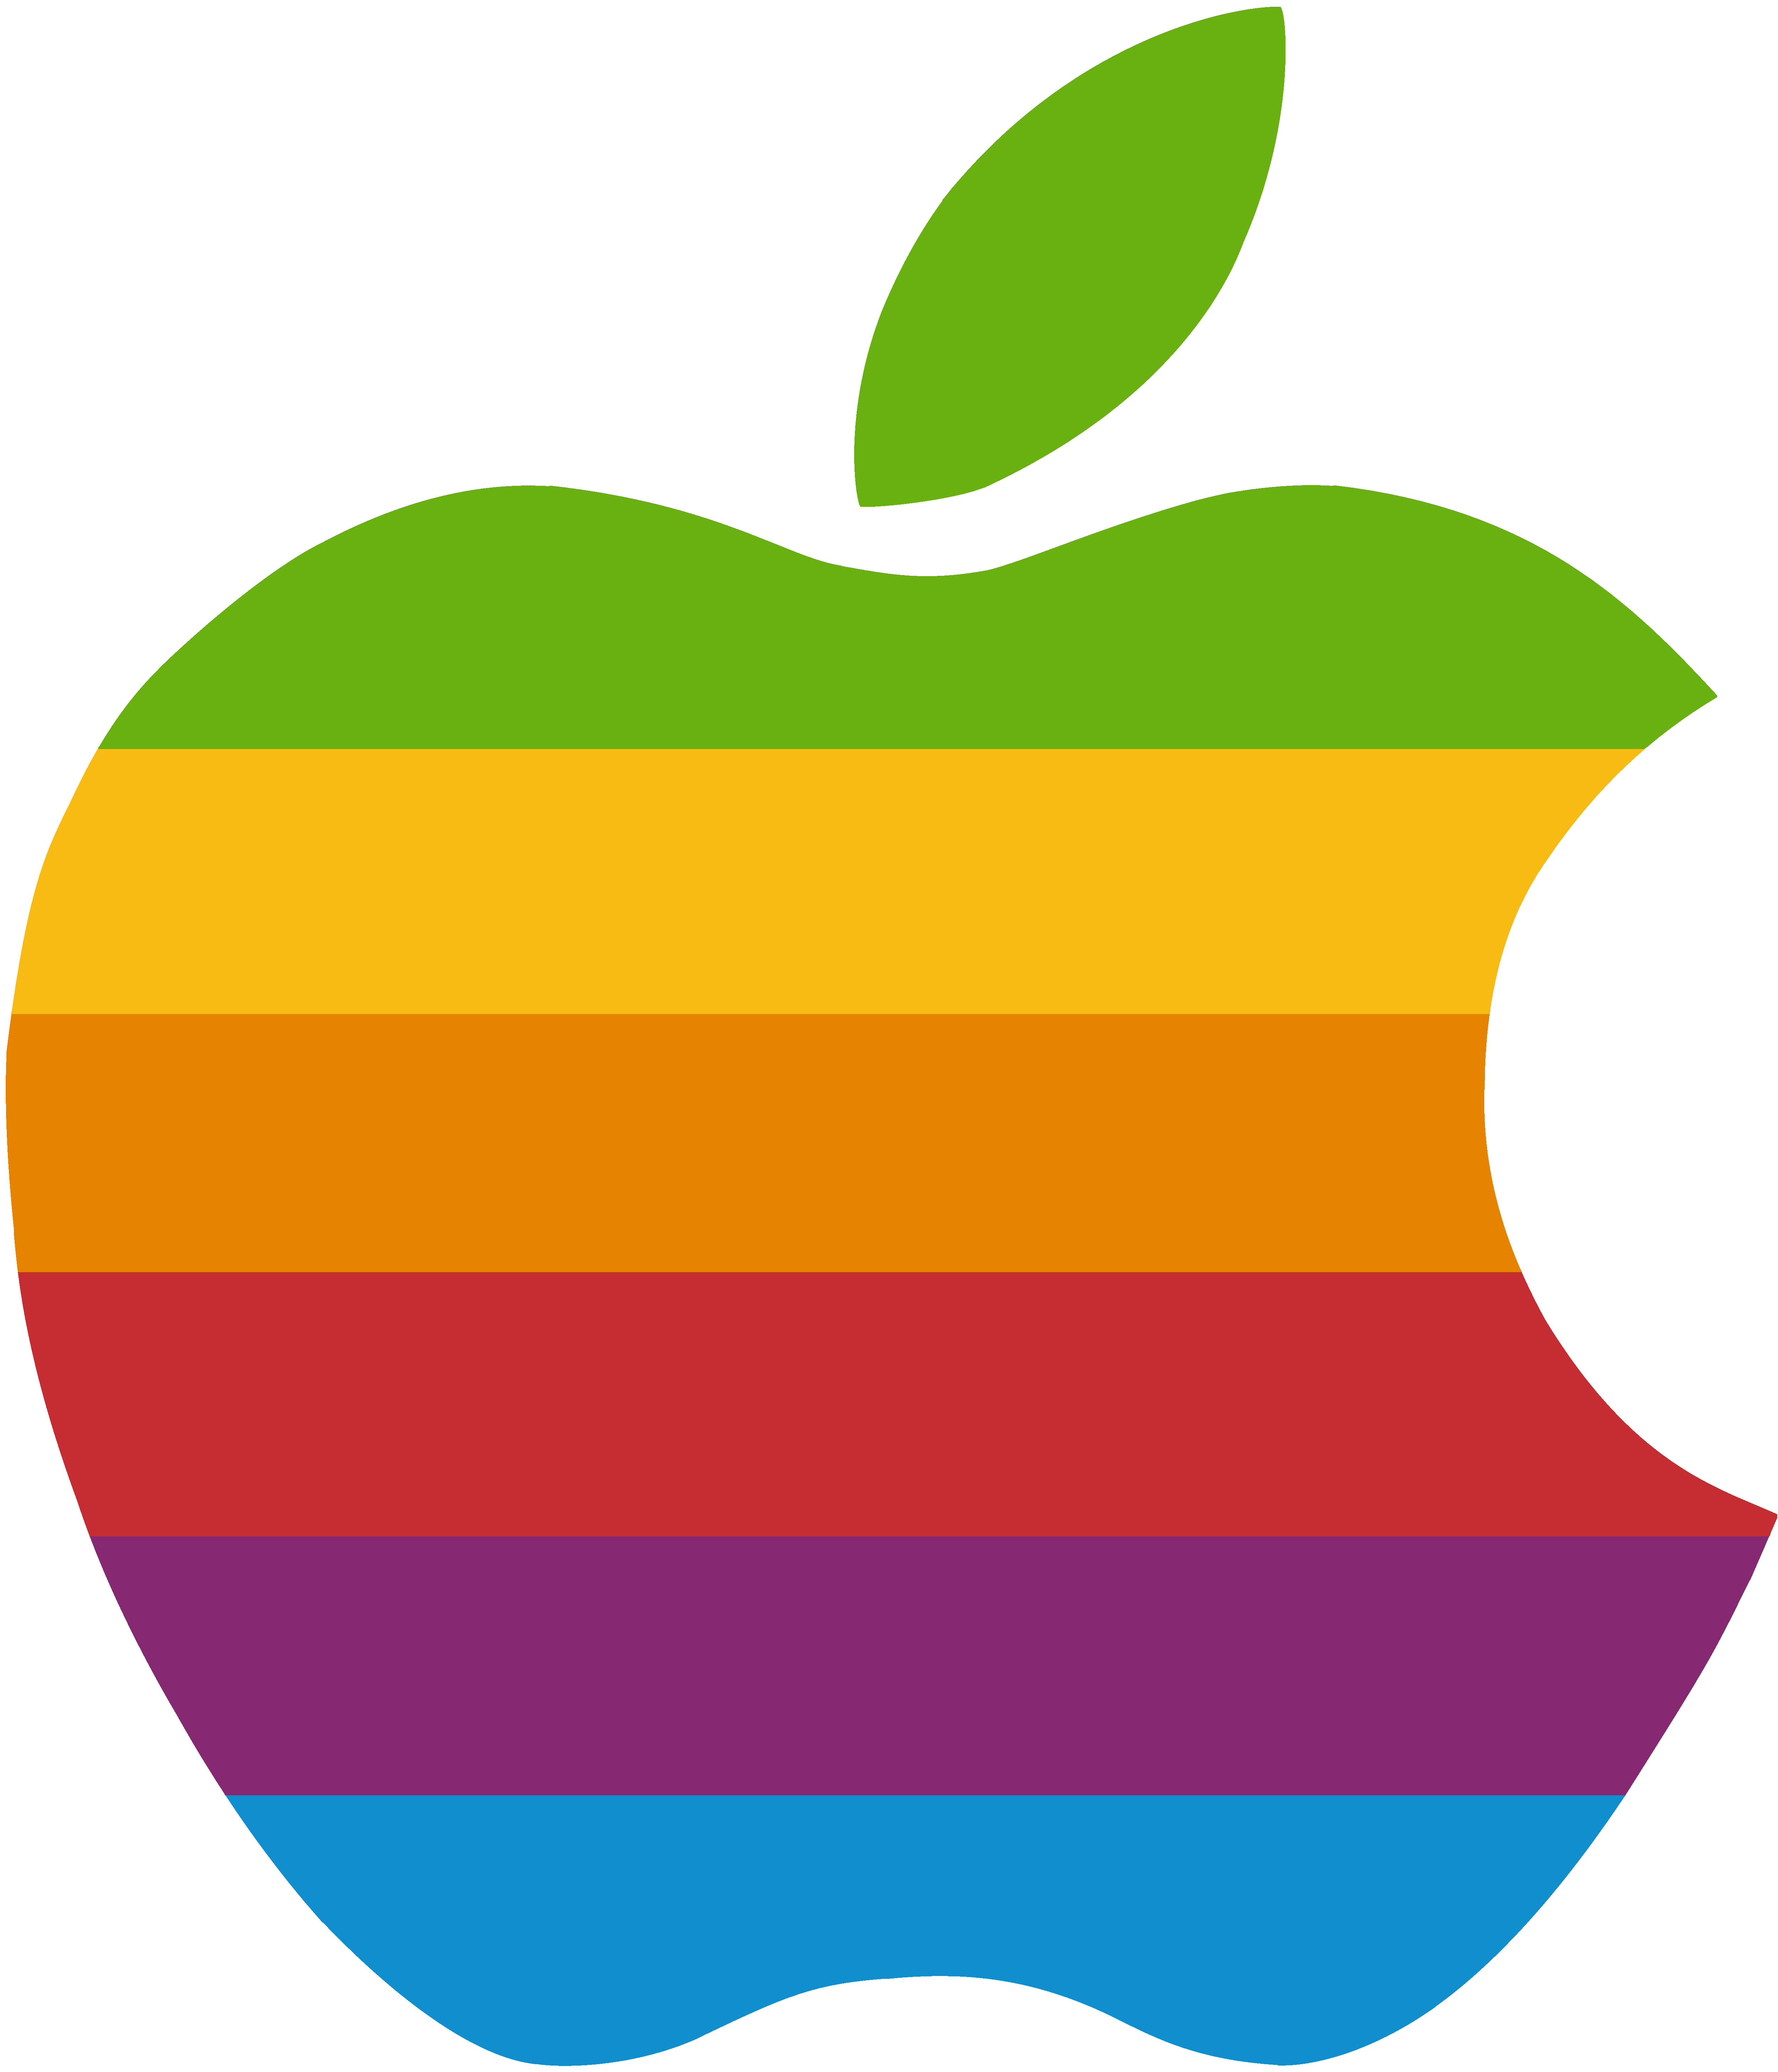 the apple logo Whether you are a mac person or a pc person, even the briefest exposure to the  apple logo may make you behave more creatively, according.